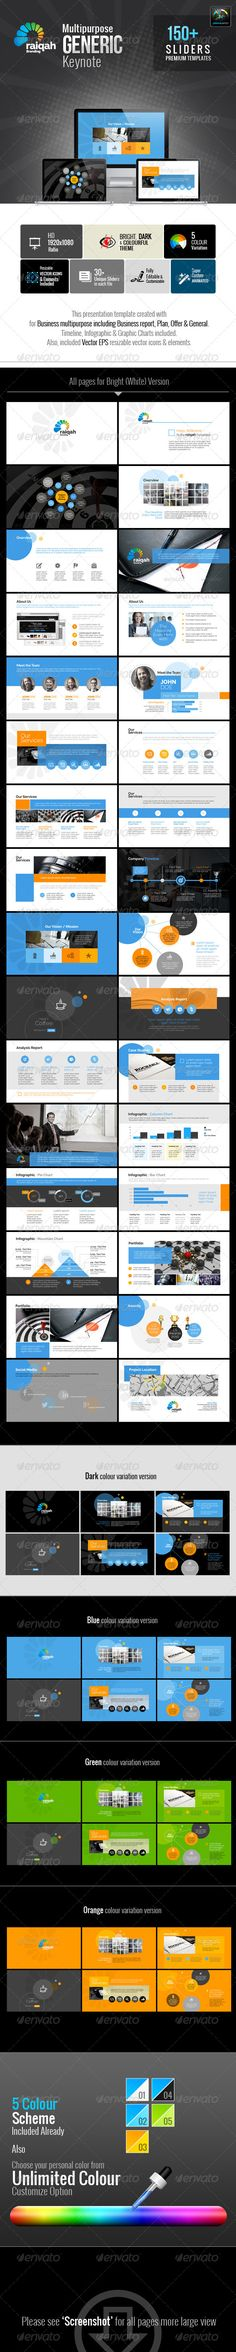 Minimal multipurpose powerpoint template powerpoint templates minimal multipurpose powerpoint template powerpoint templates presentation templates template and creative powerpoint toneelgroepblik Image collections